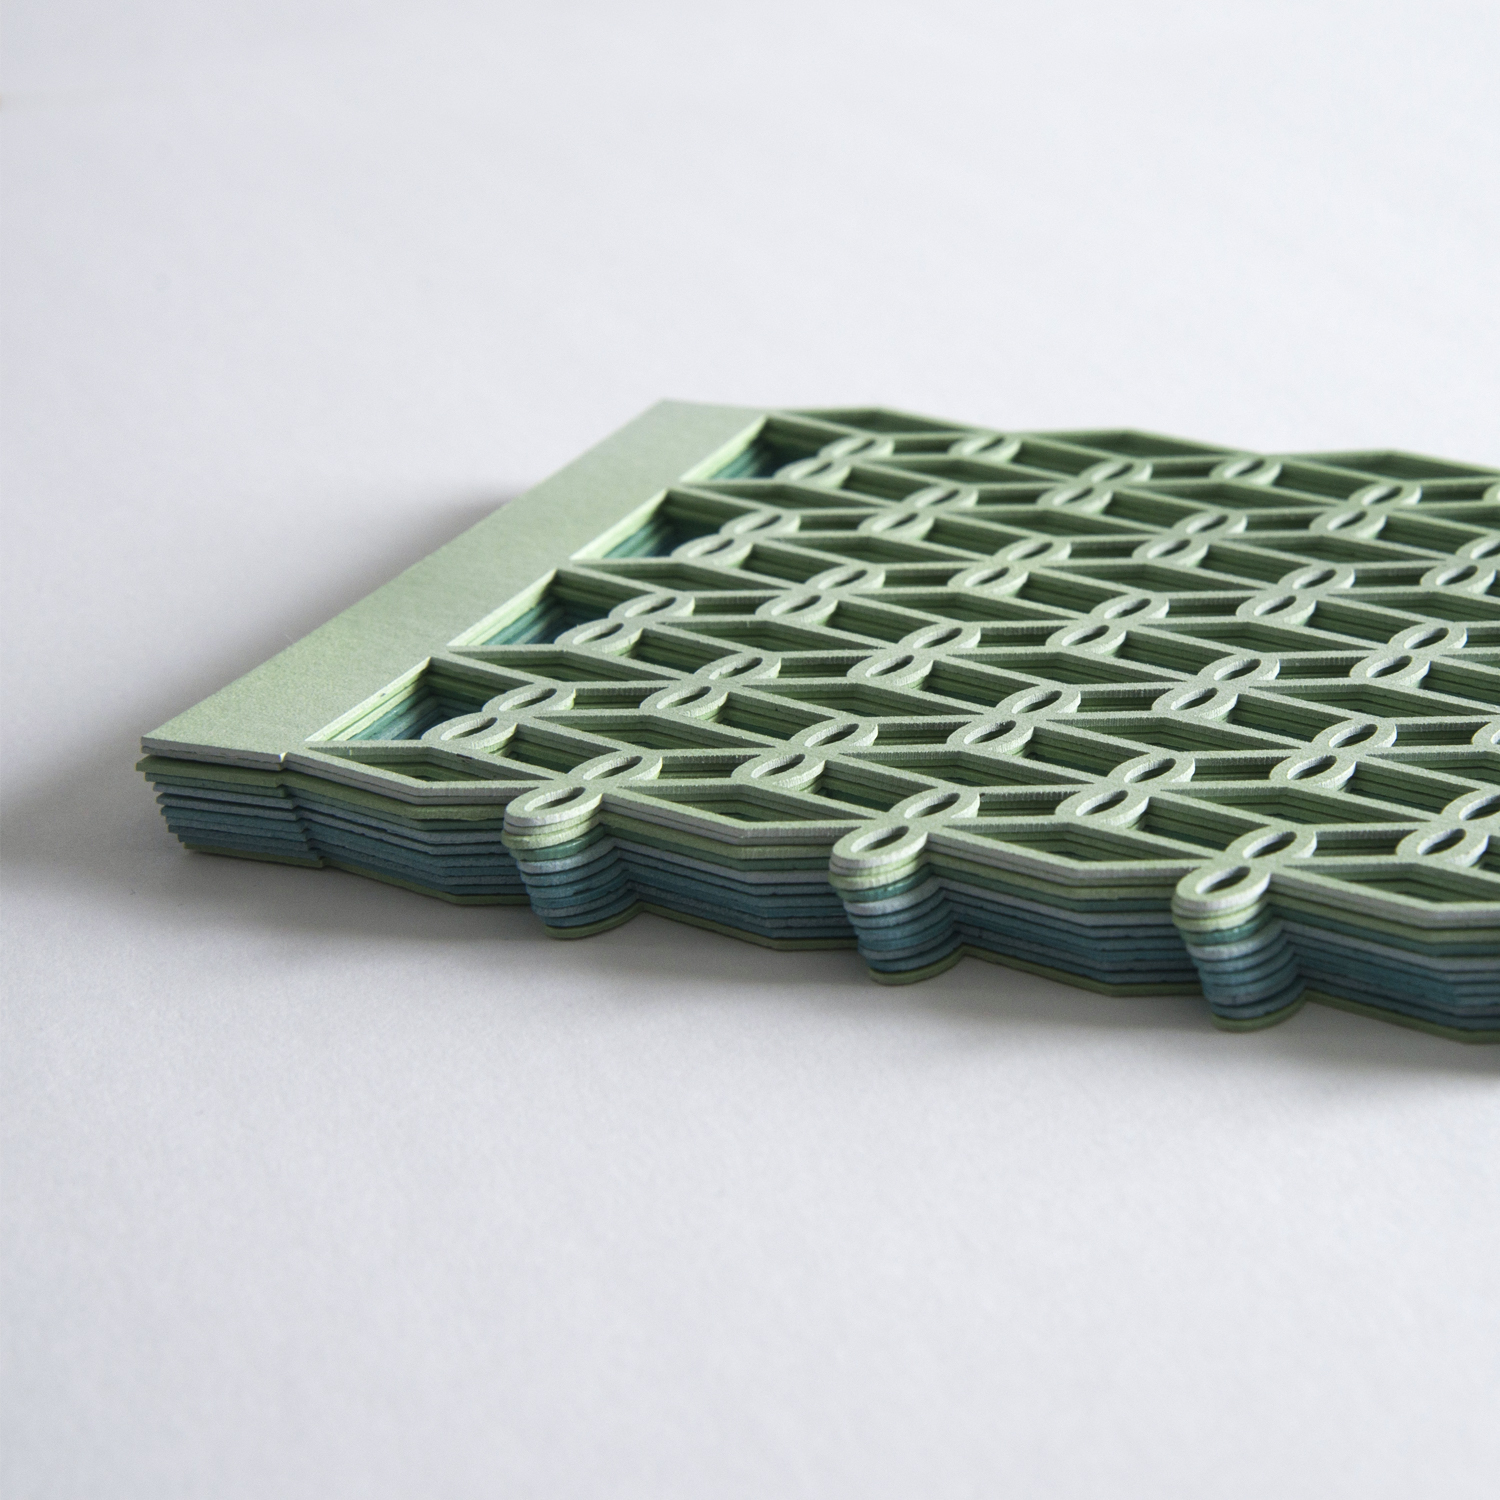 Laser cutting and pattern making